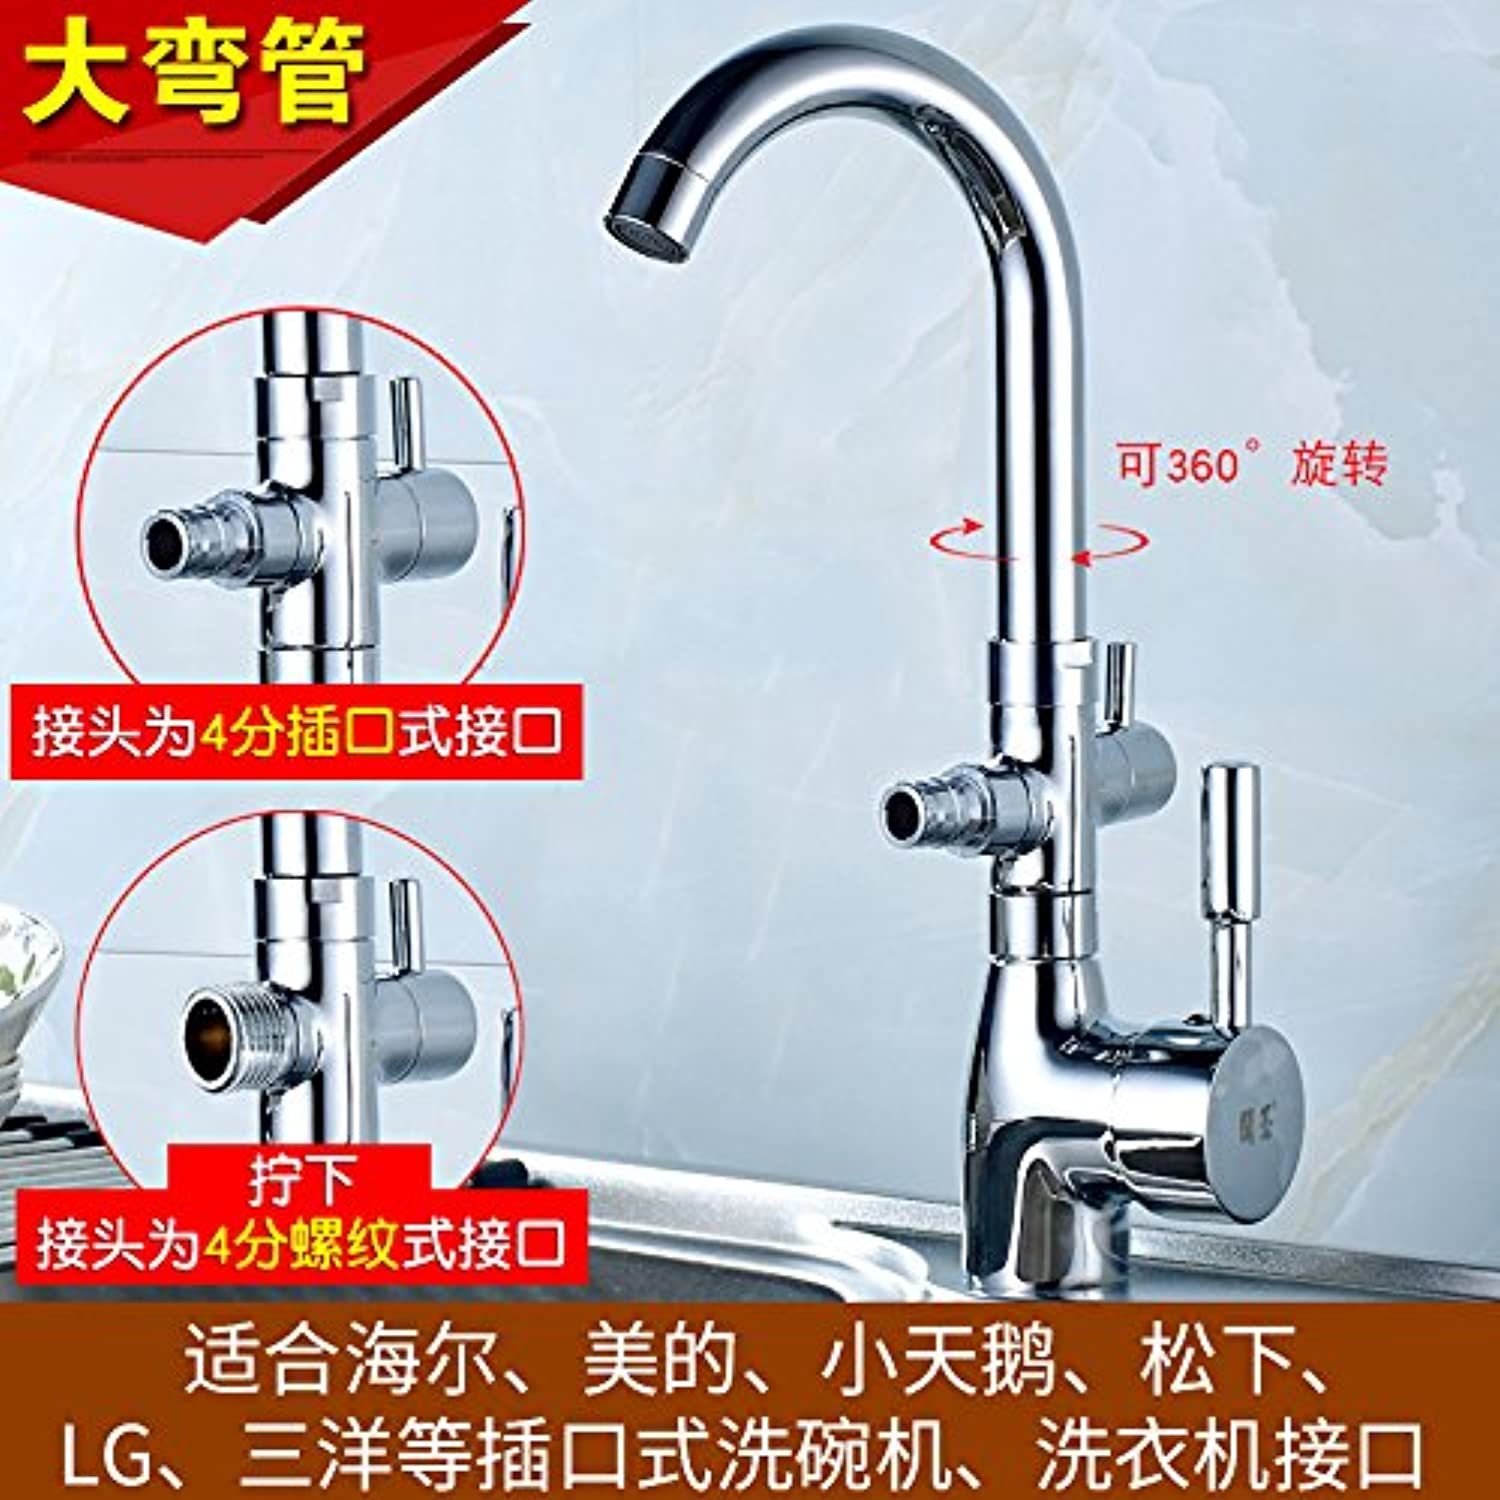 Gyps Faucet Wash Basin Single-Lever Mixer Tap Washbasin Tap for 46 Minutes Siemens Kitchen Faucet Hot and Cold Food Throughout Copper Wash Basin Tap Big B